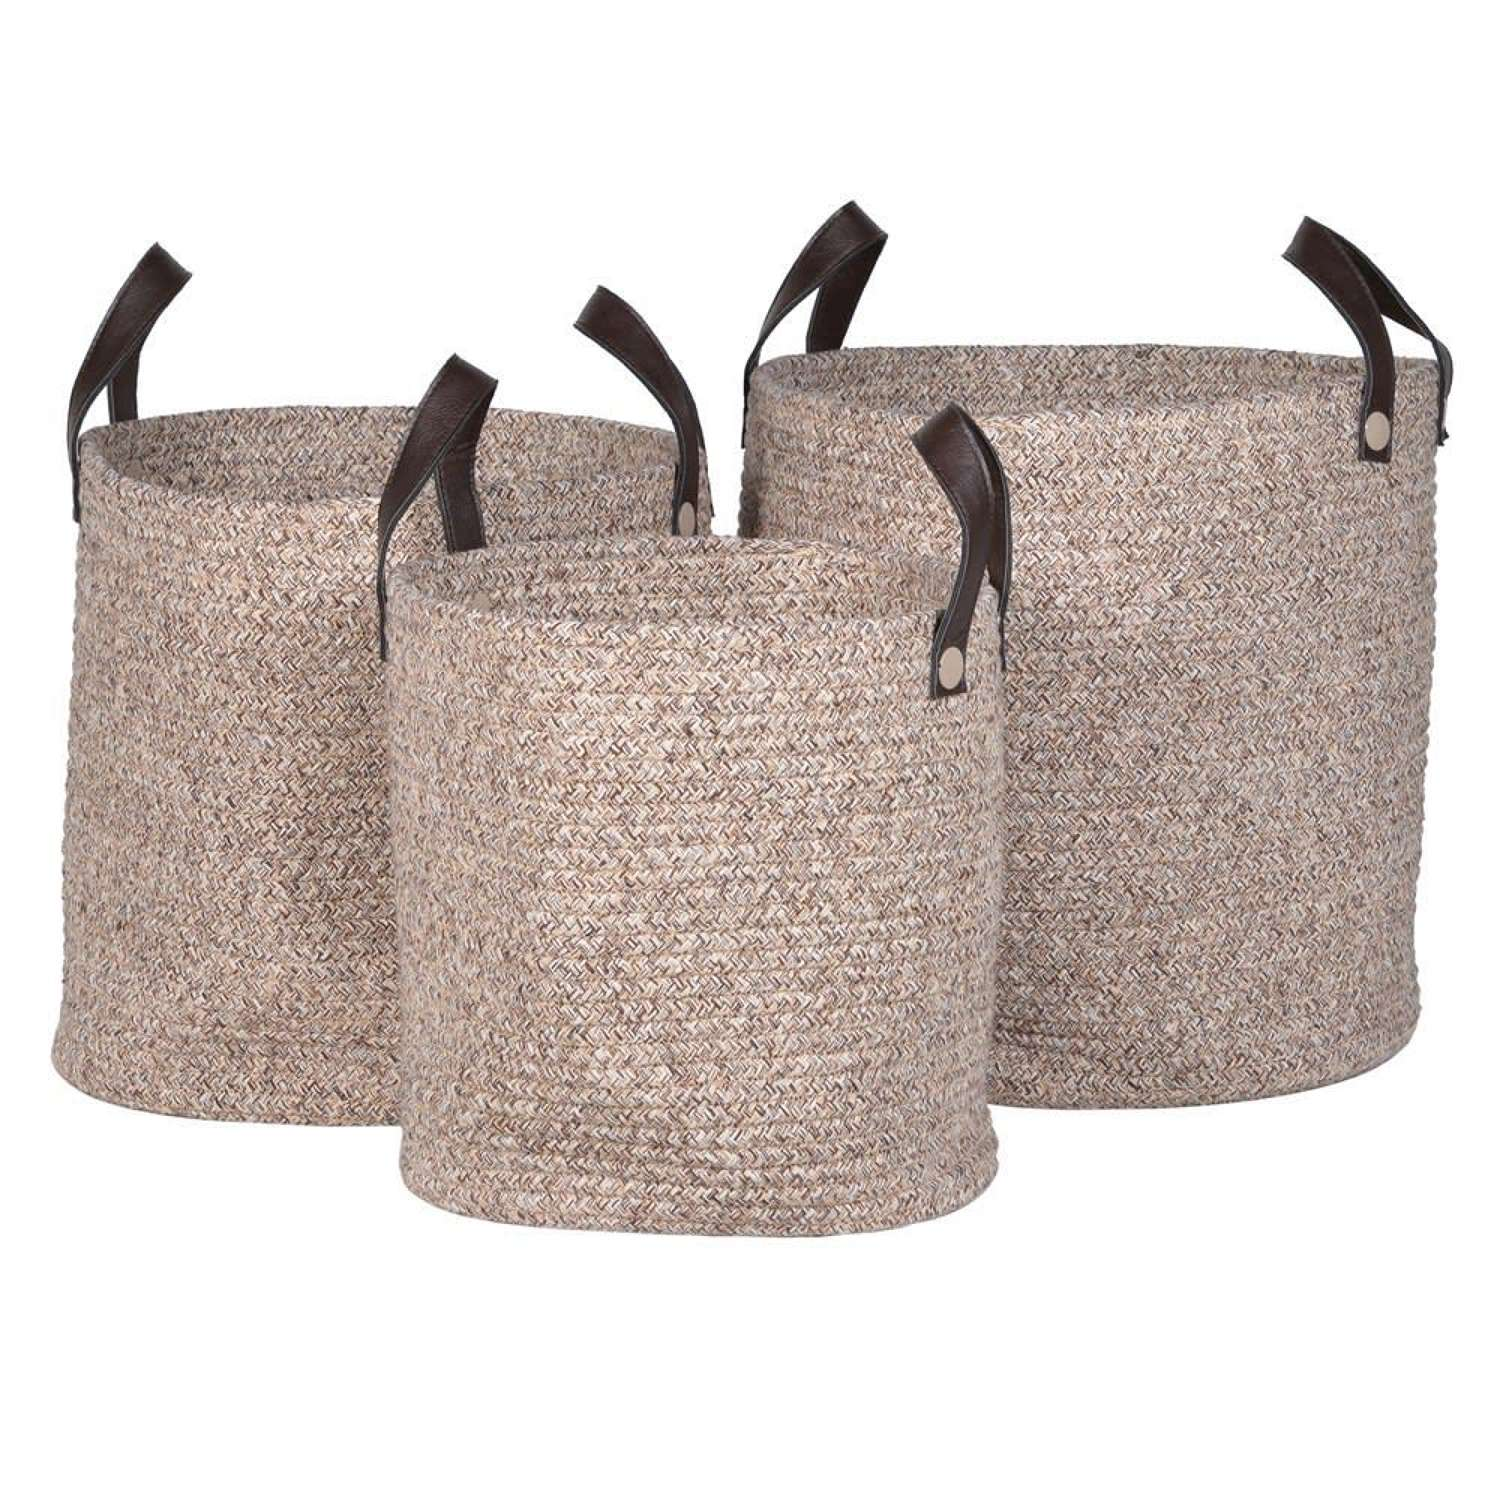 Trio of Rope Storage Baskets - Faux Leather Handles